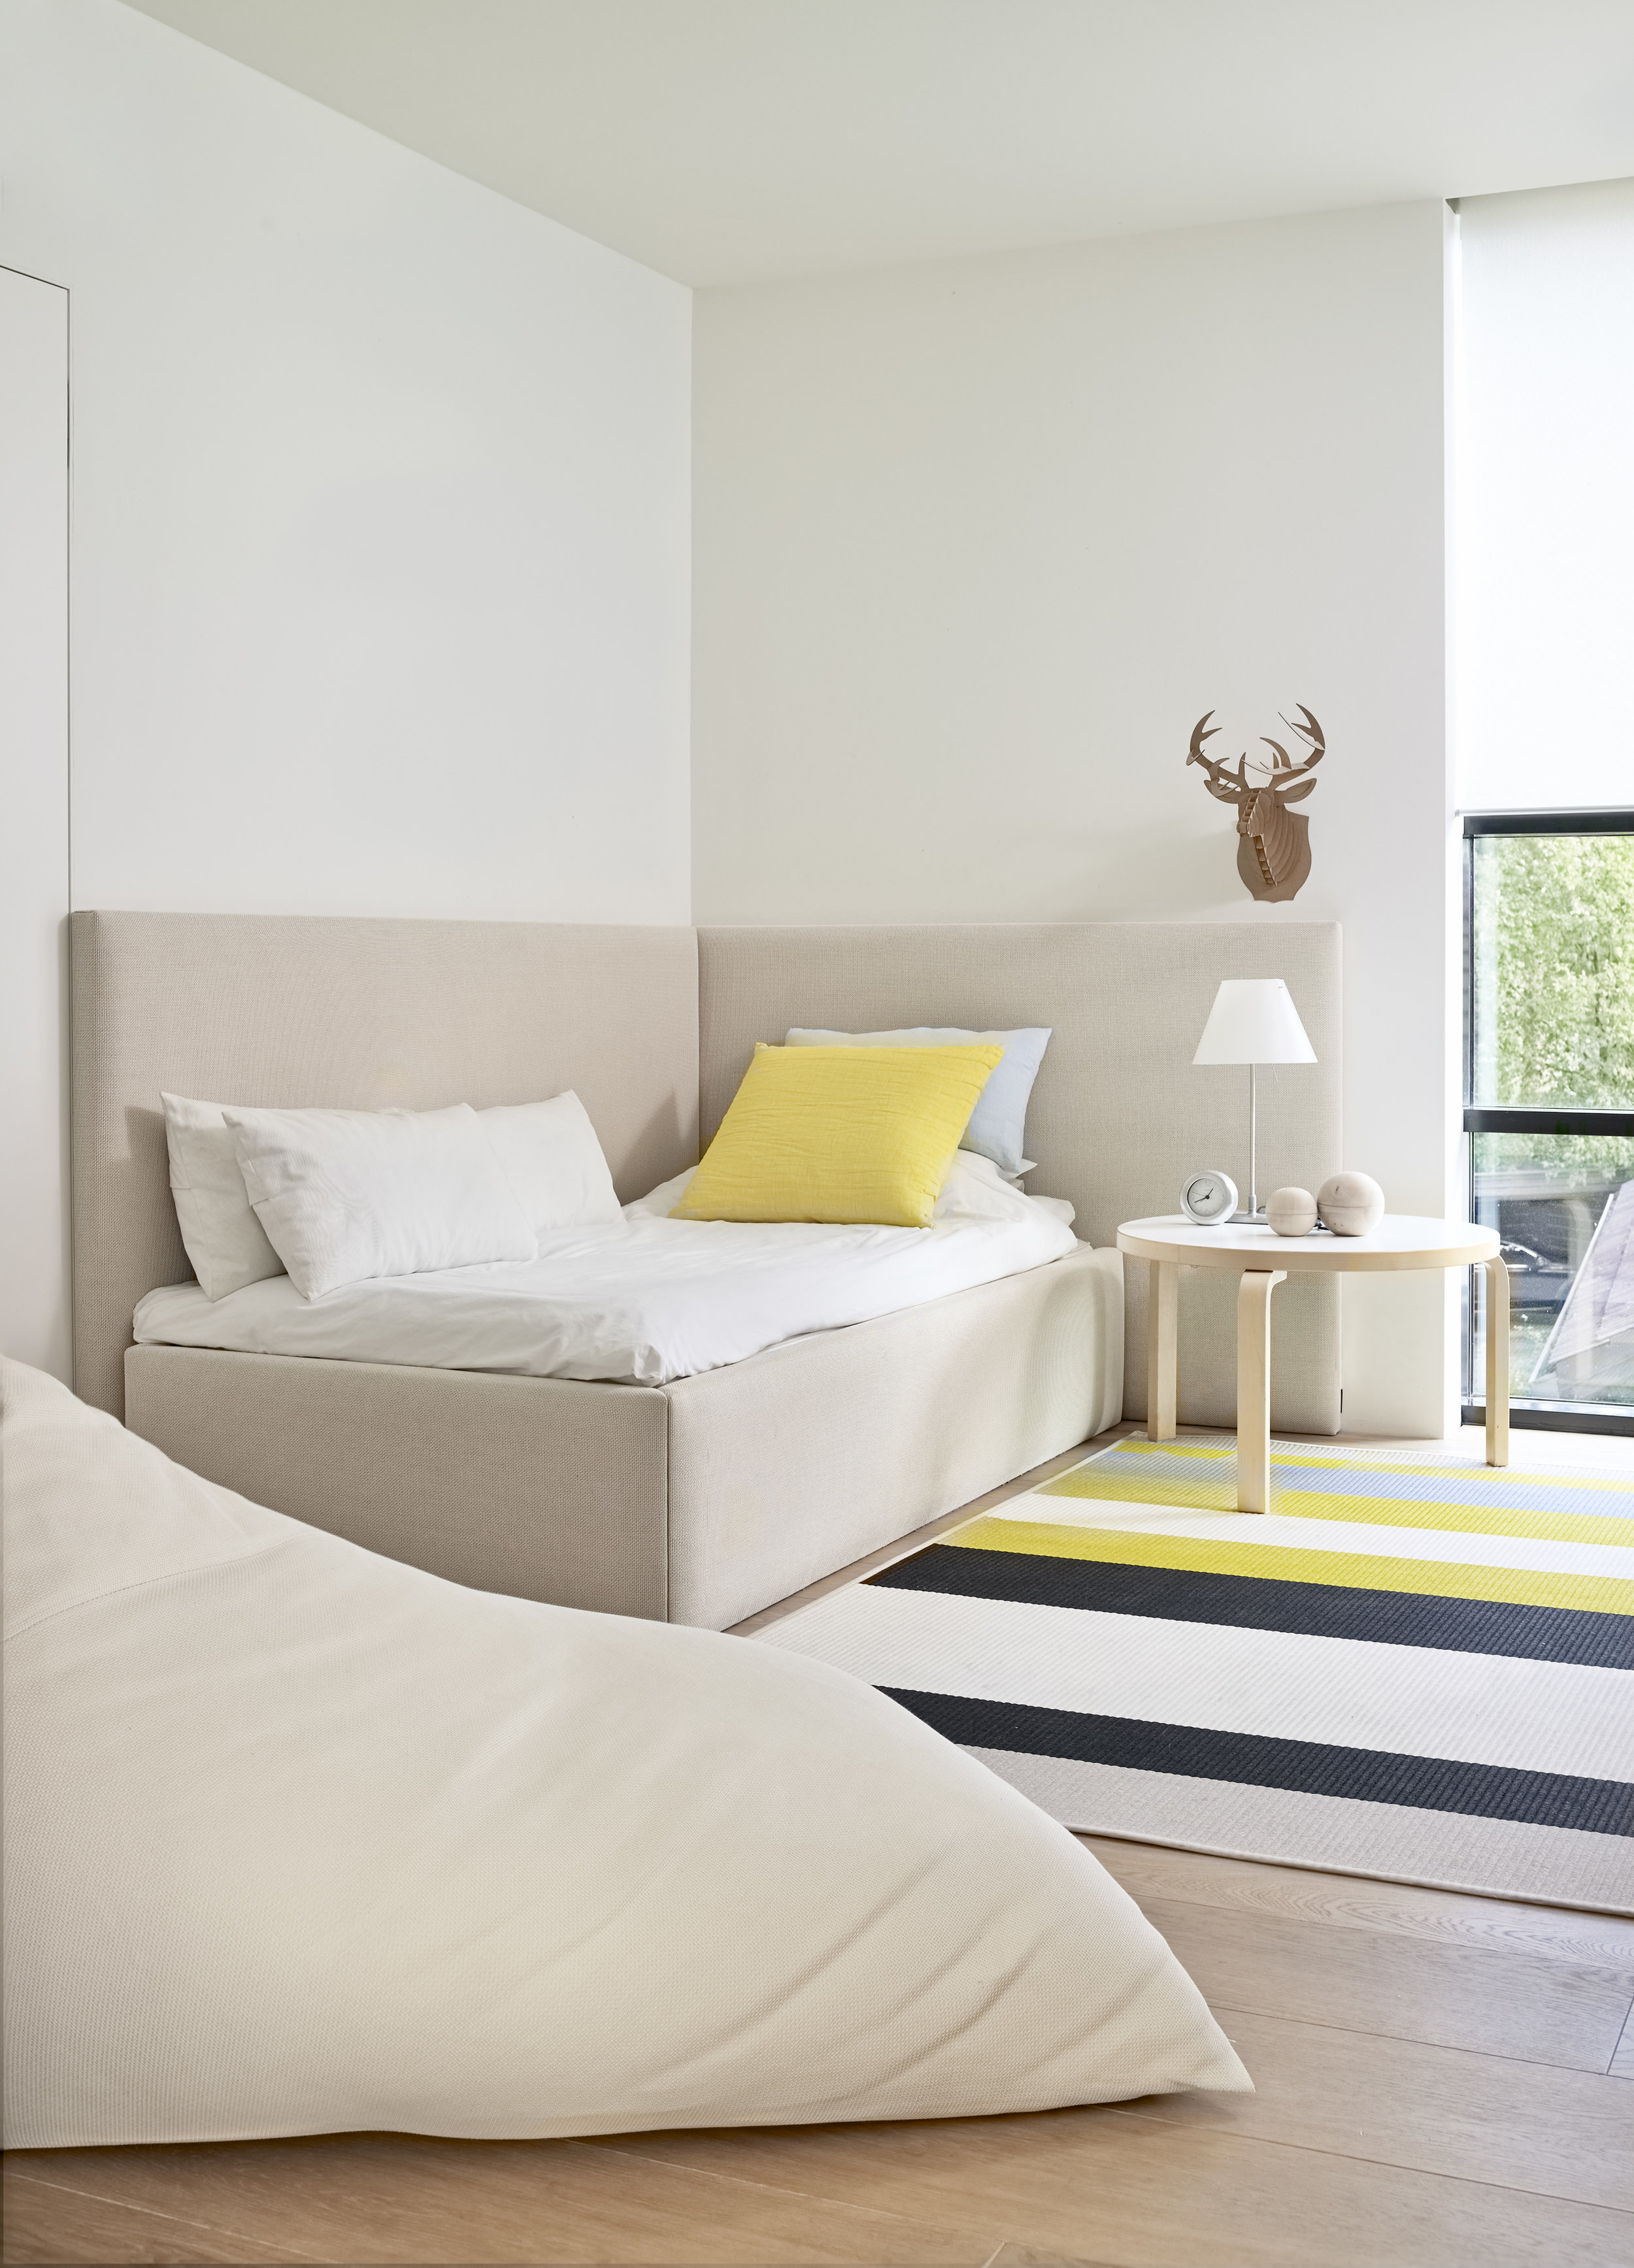 47004 Woodnotes Corner Bed stone-white, 1371522  Avenue  stone-yellow paper yarn carpet, 4611 My white lounge chair